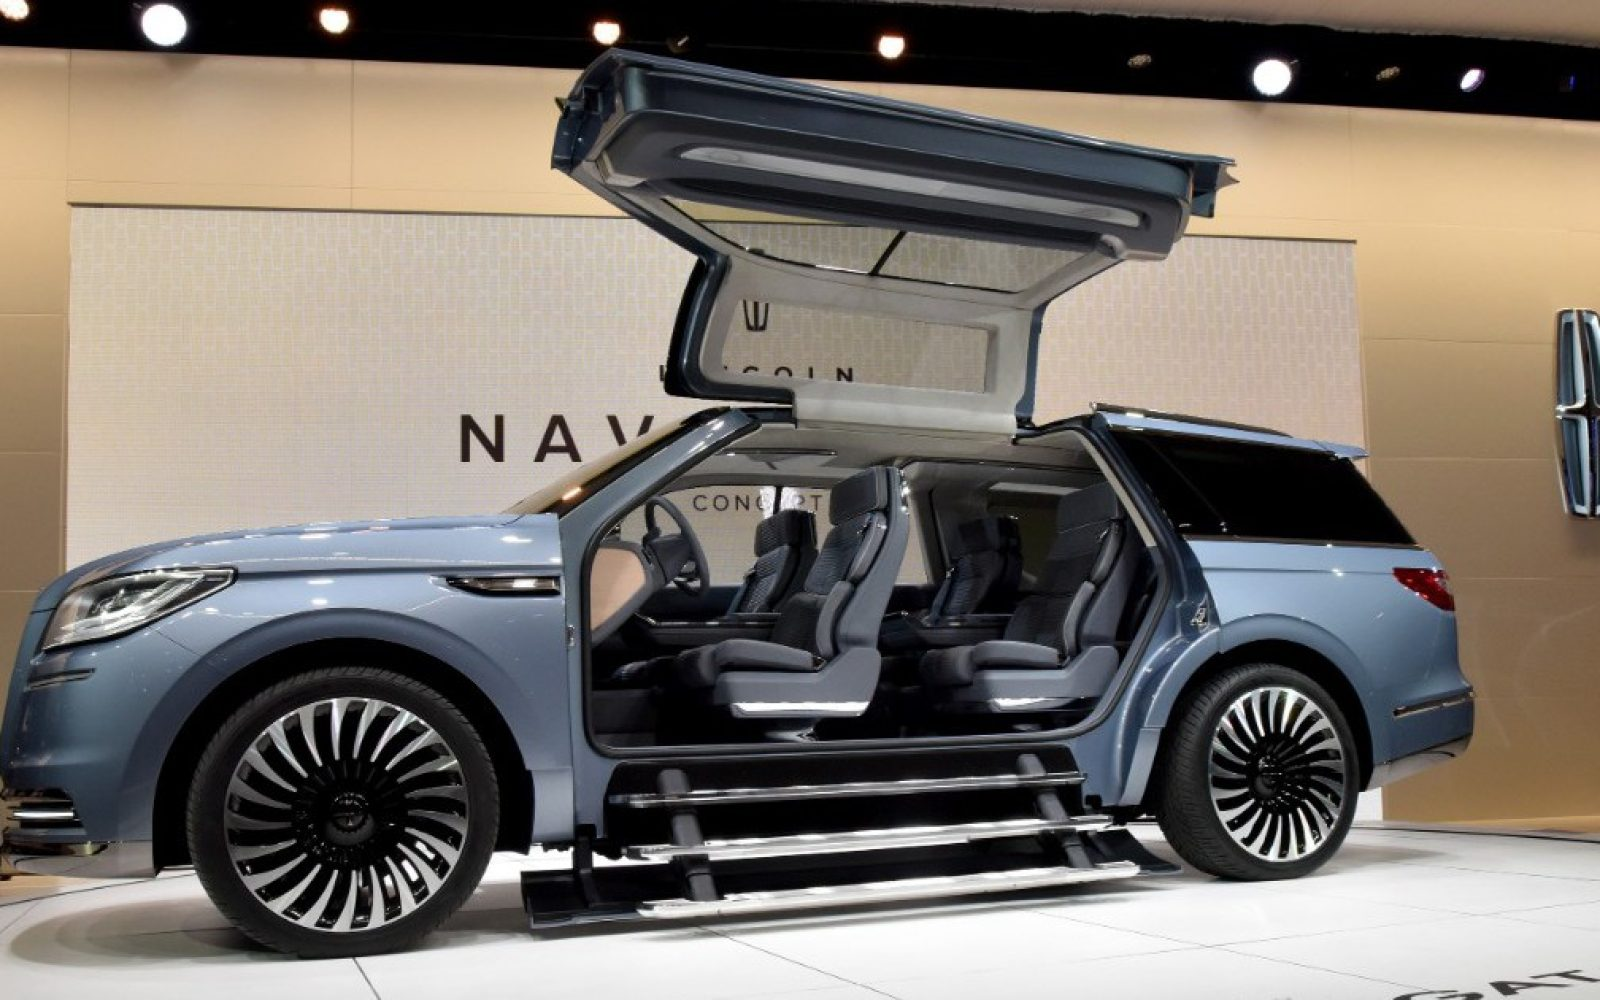 Lincoln S New Navigator Concept Does Not Have Tesla S